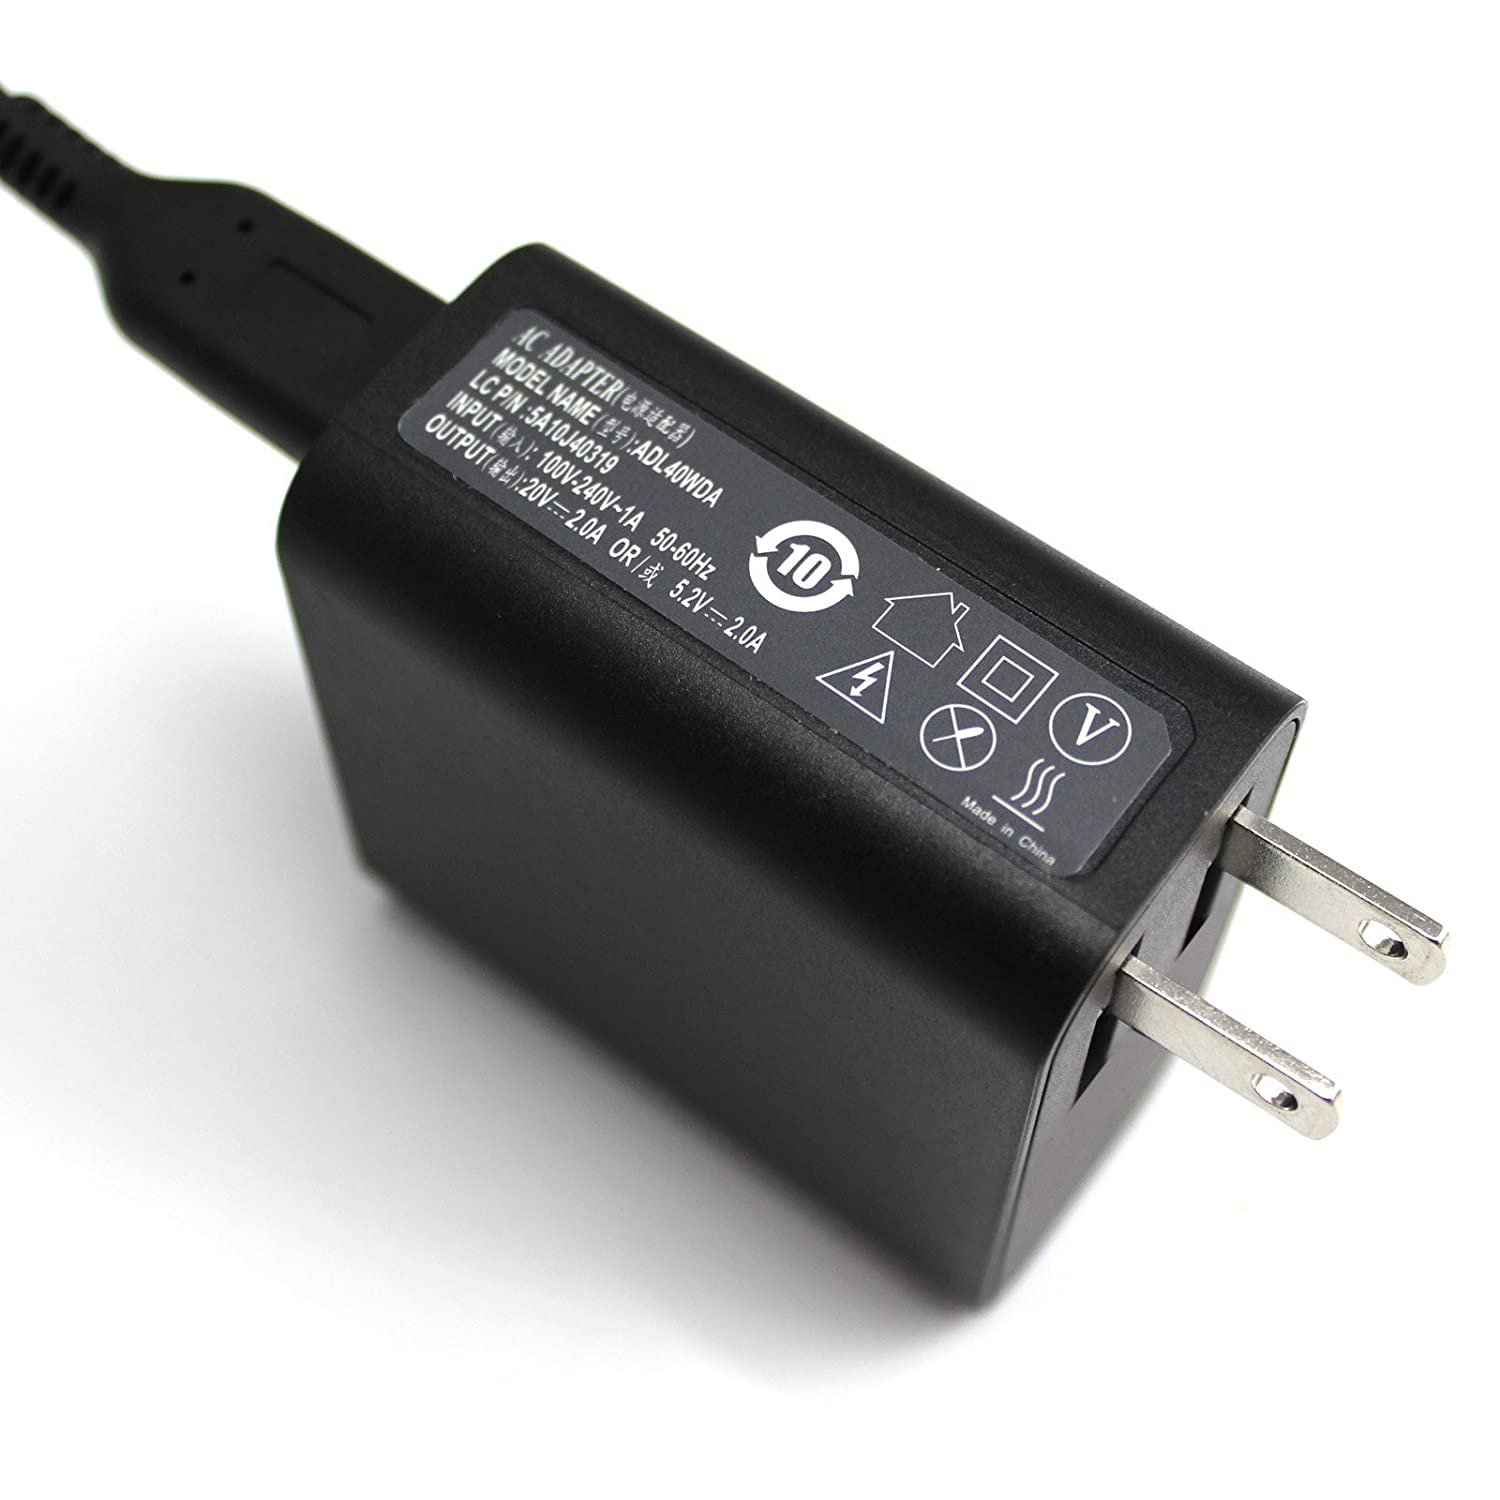 Amazon.com: Shareway 20V 2A 40W Power Supply Adapter For ...